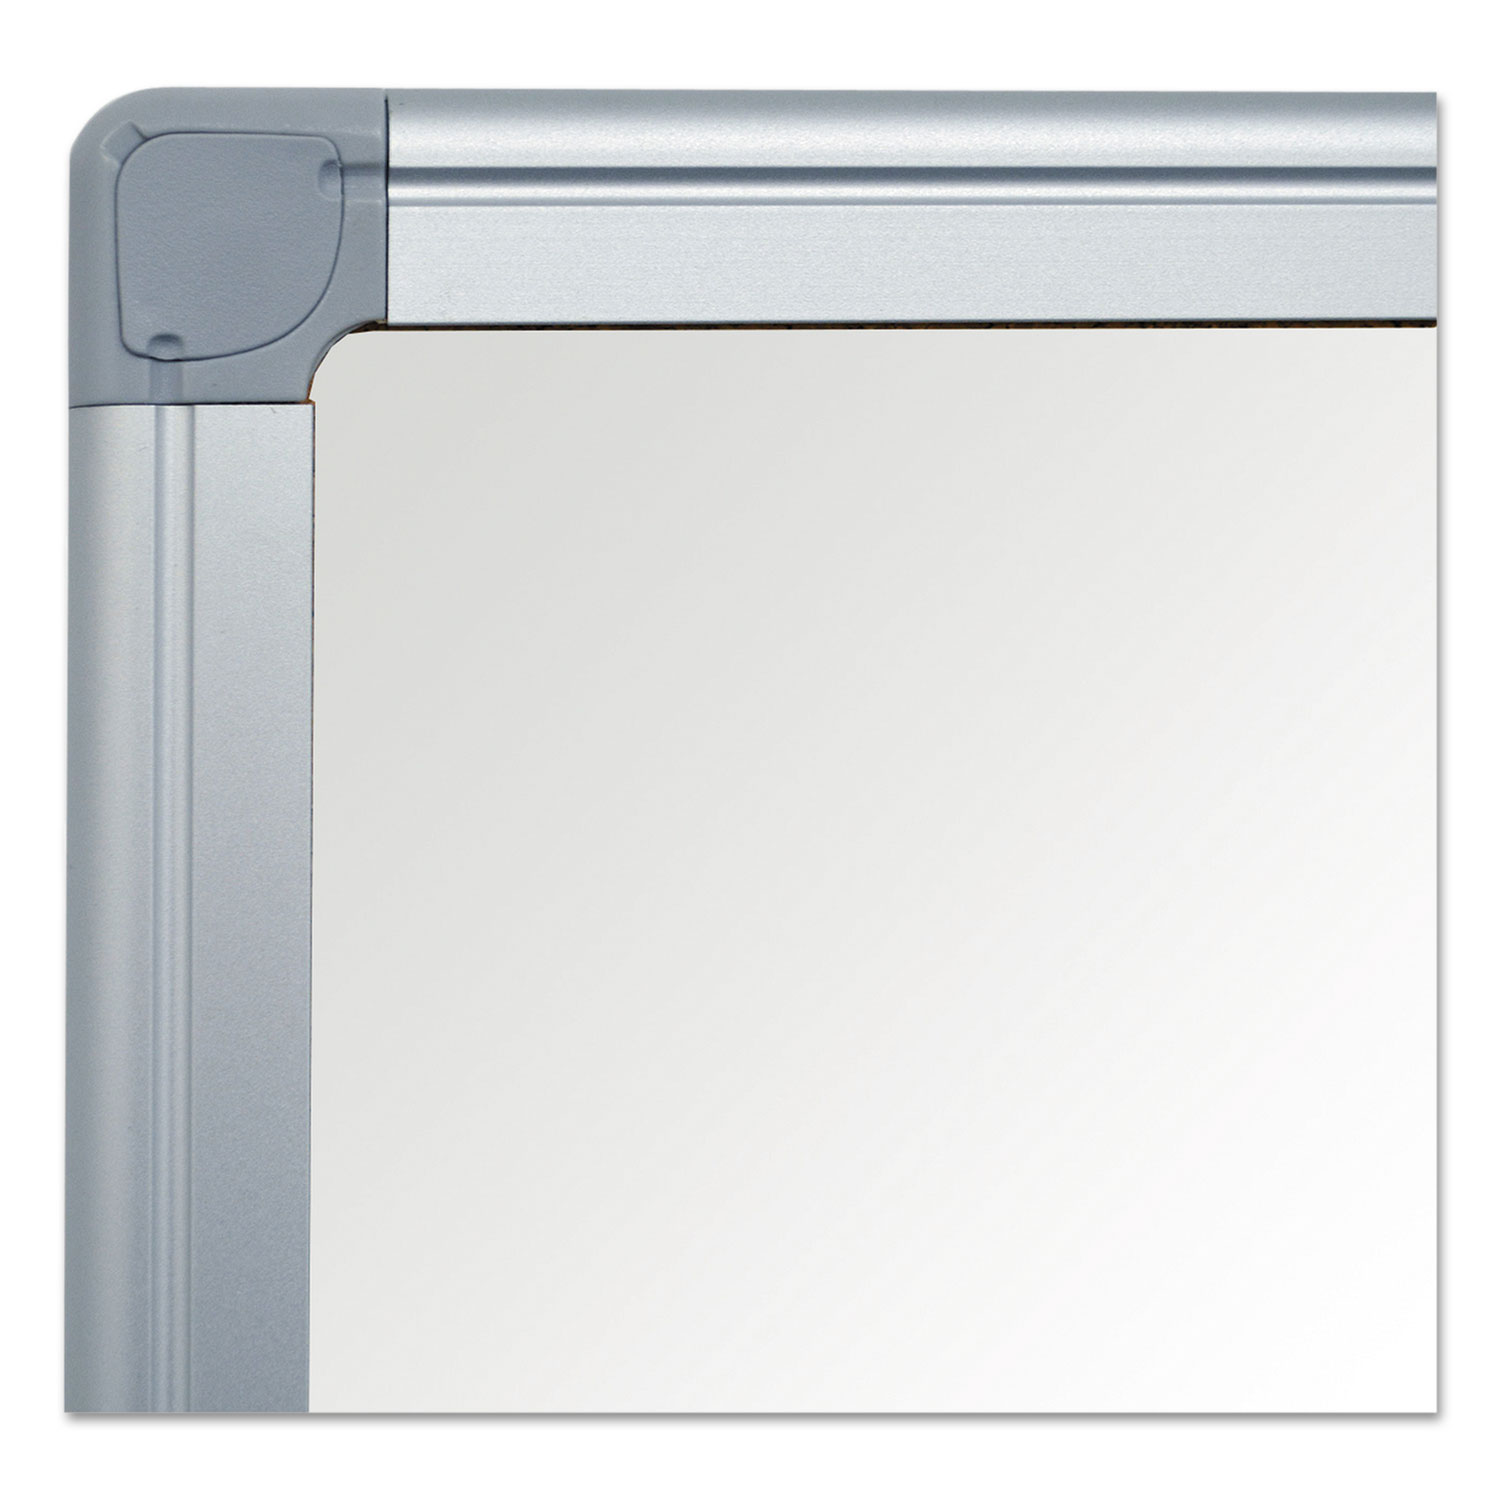 value lacquered steel magnetic dry erase board 36 x 48 white aluminum frame